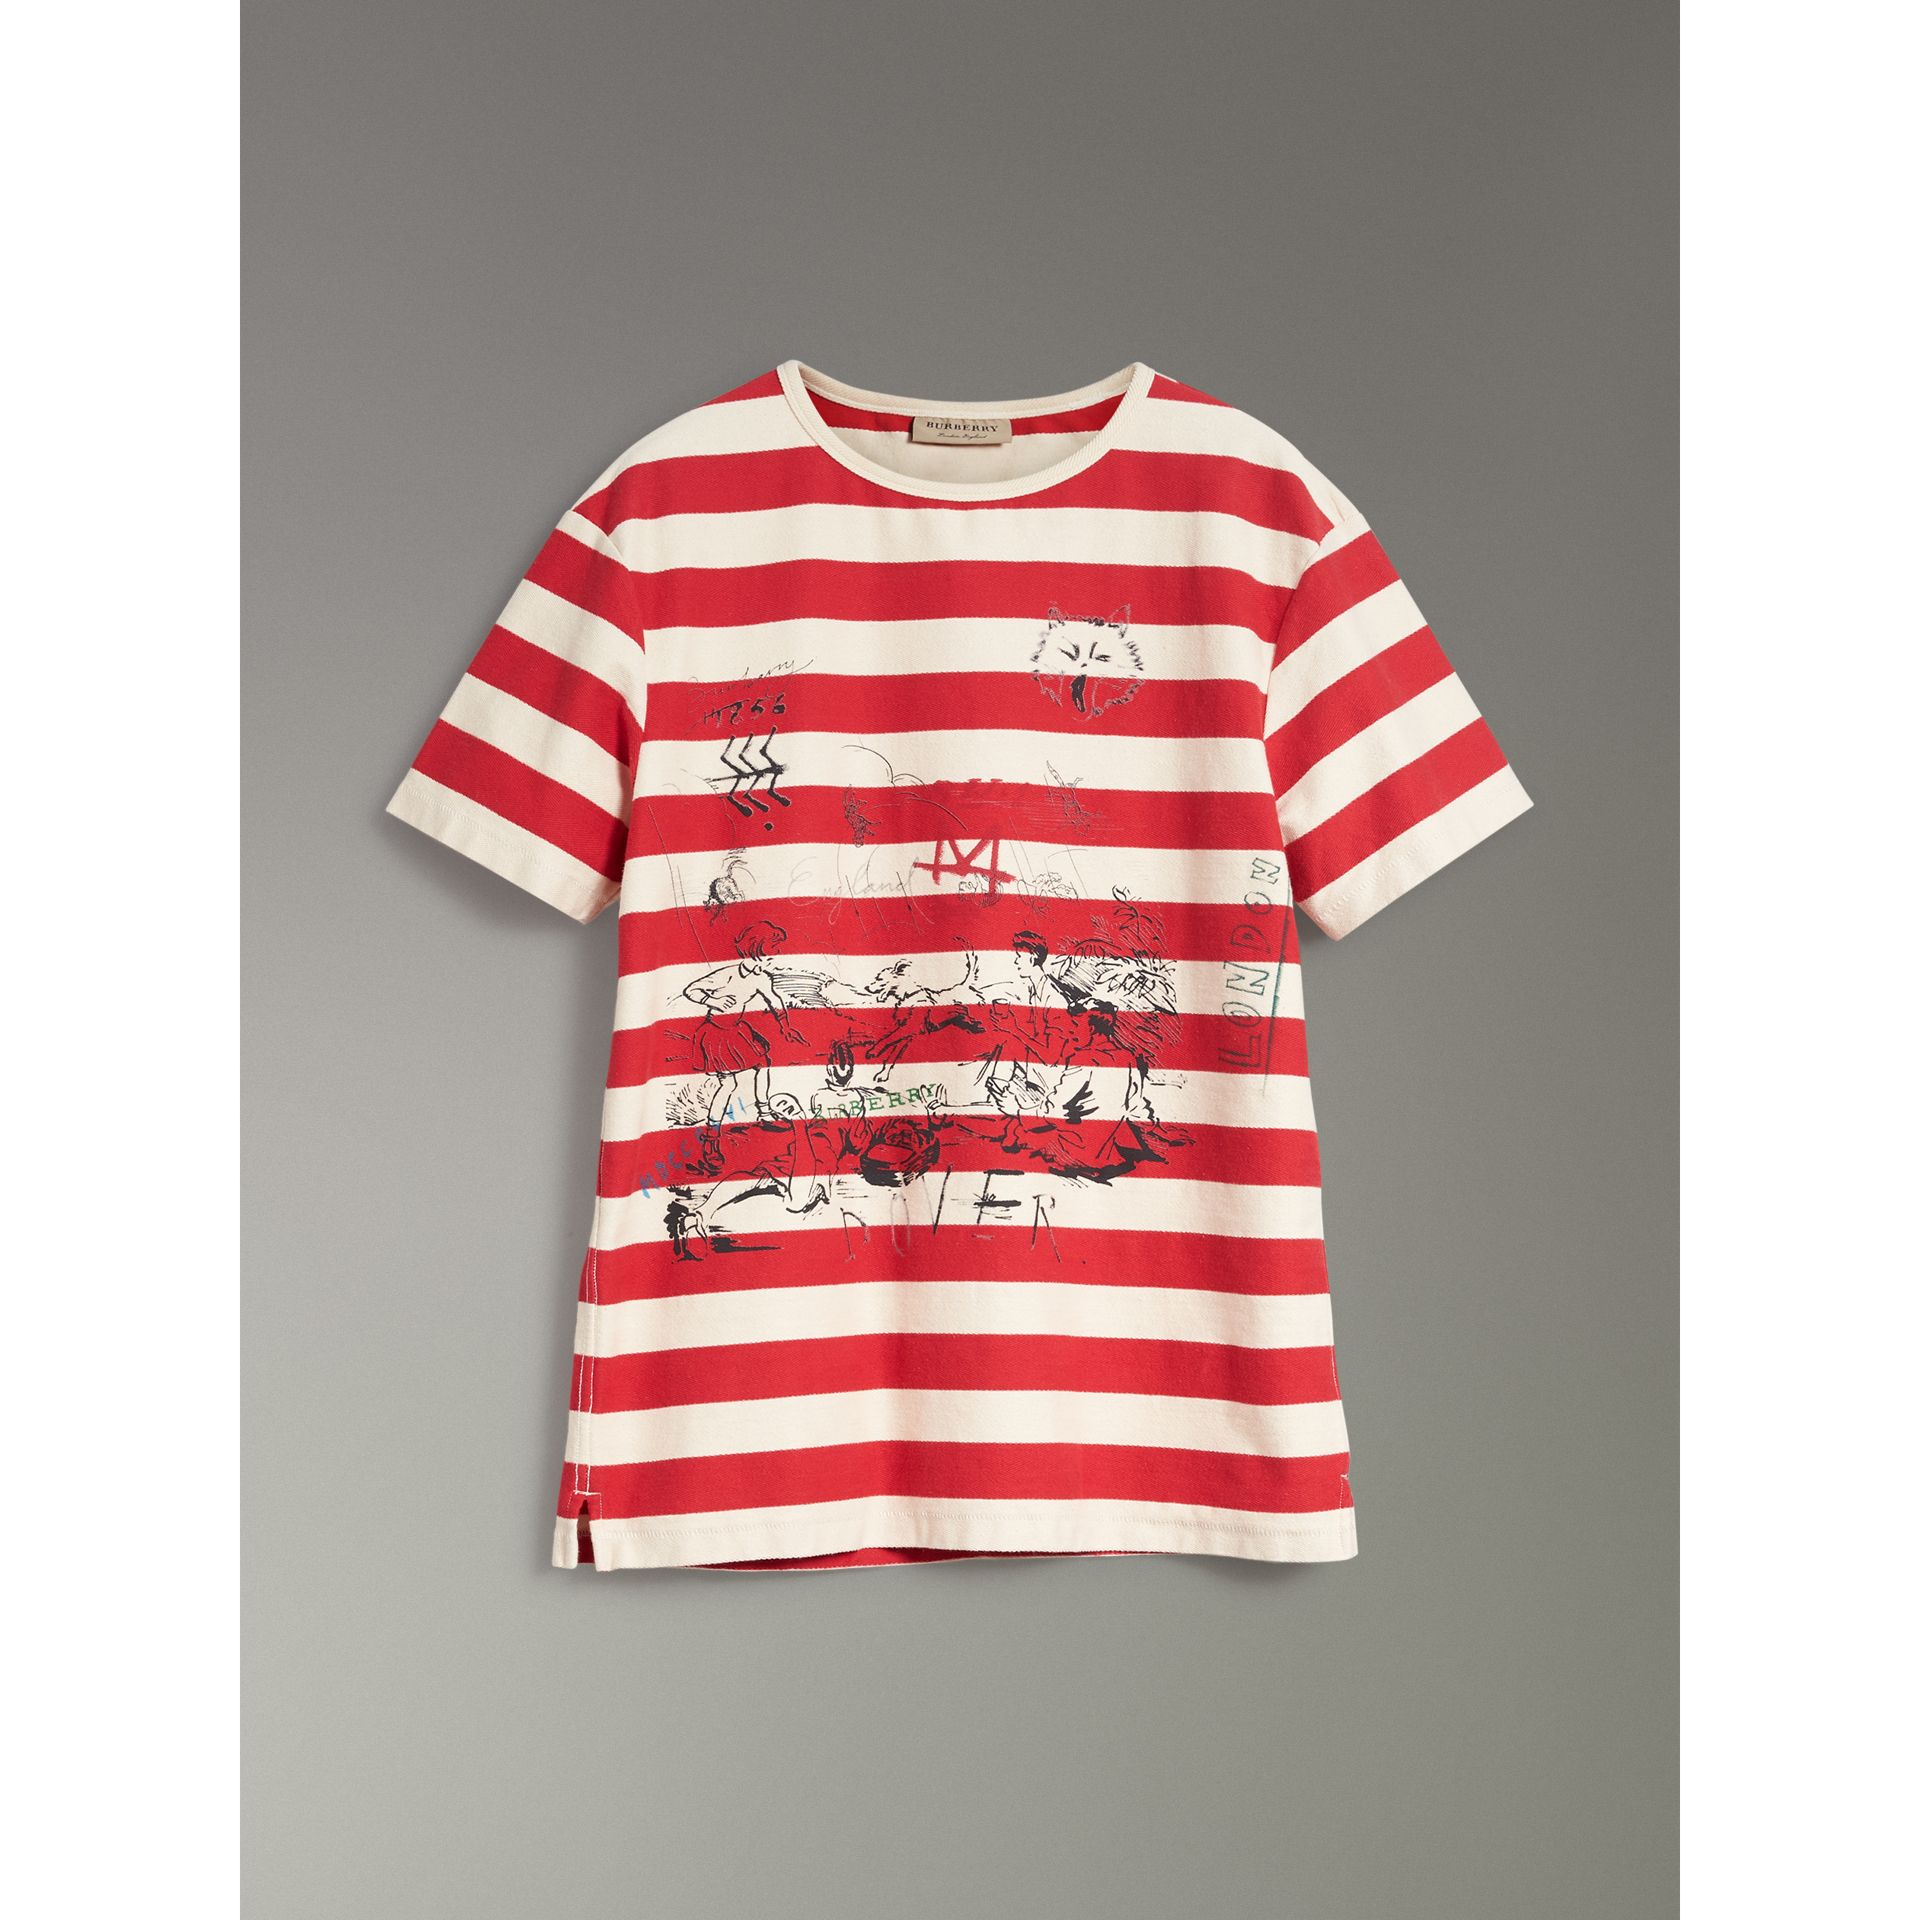 Adventure Print Striped Cotton T-shirt in Off White/parade Red - Men | Burberry Australia - gallery image 3